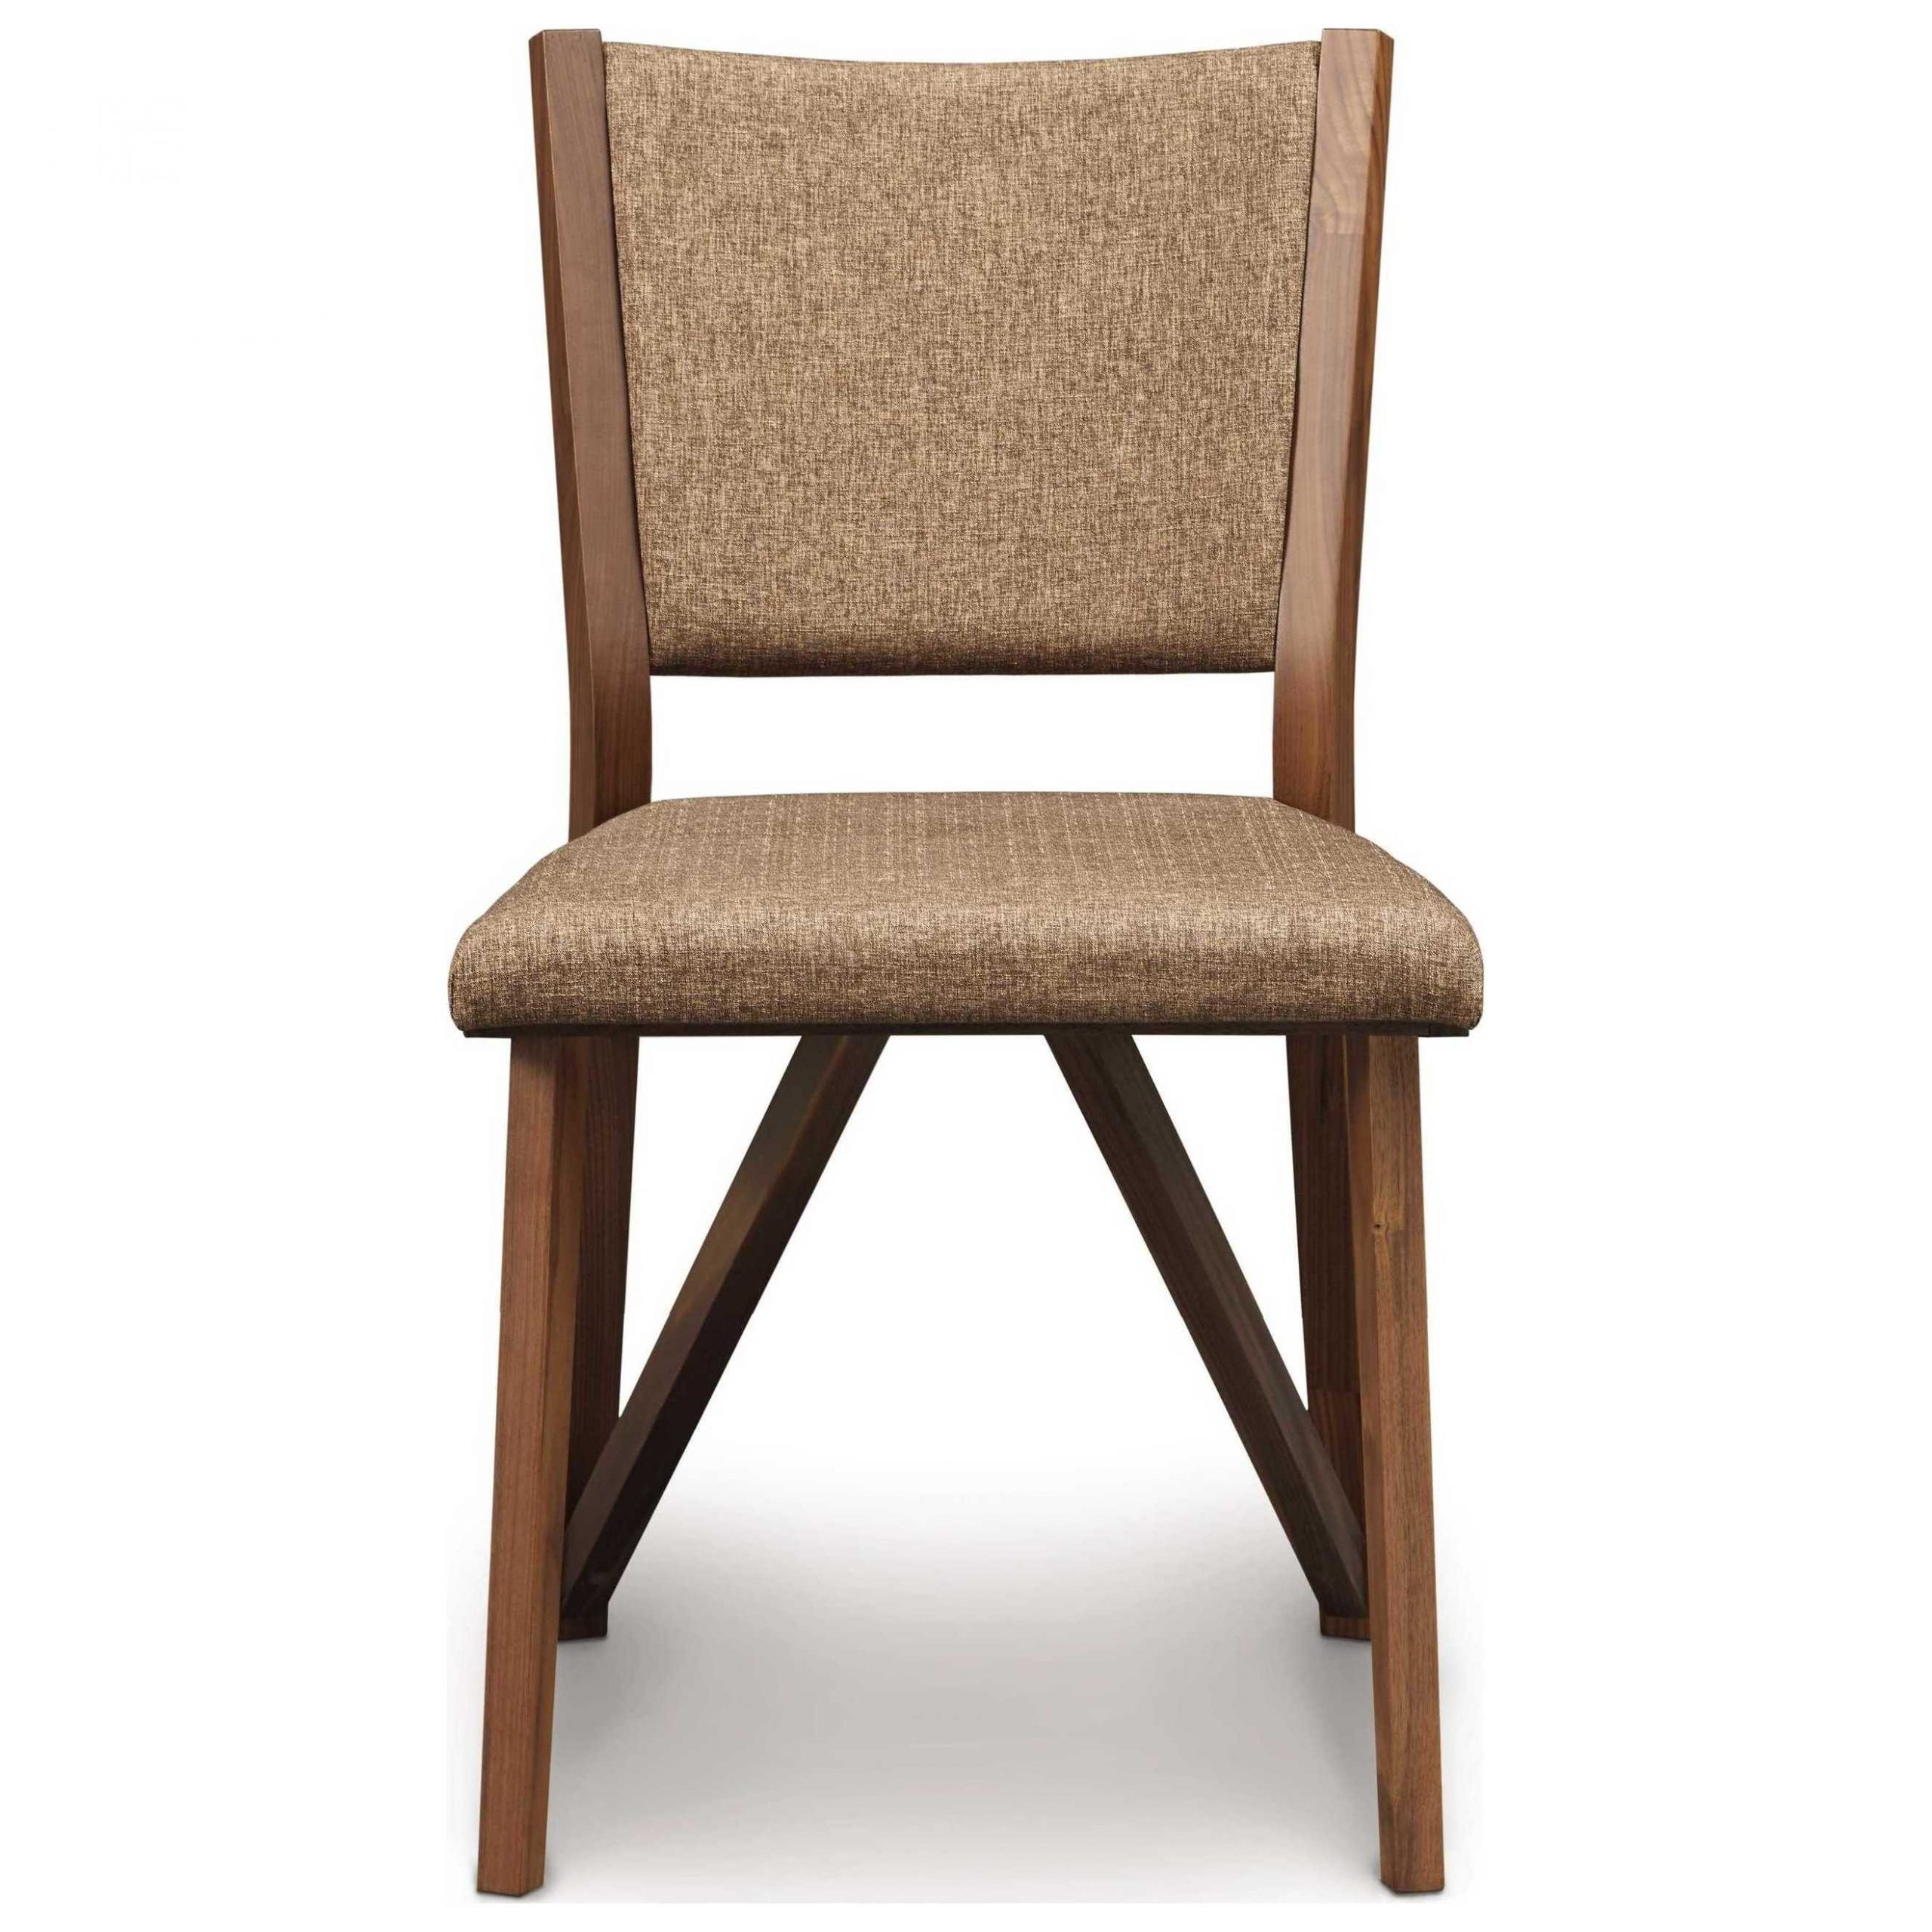 Copeland Furniture Exeter Dining Side Chair Throughout Exeter Side Chairs (View 2 of 15)